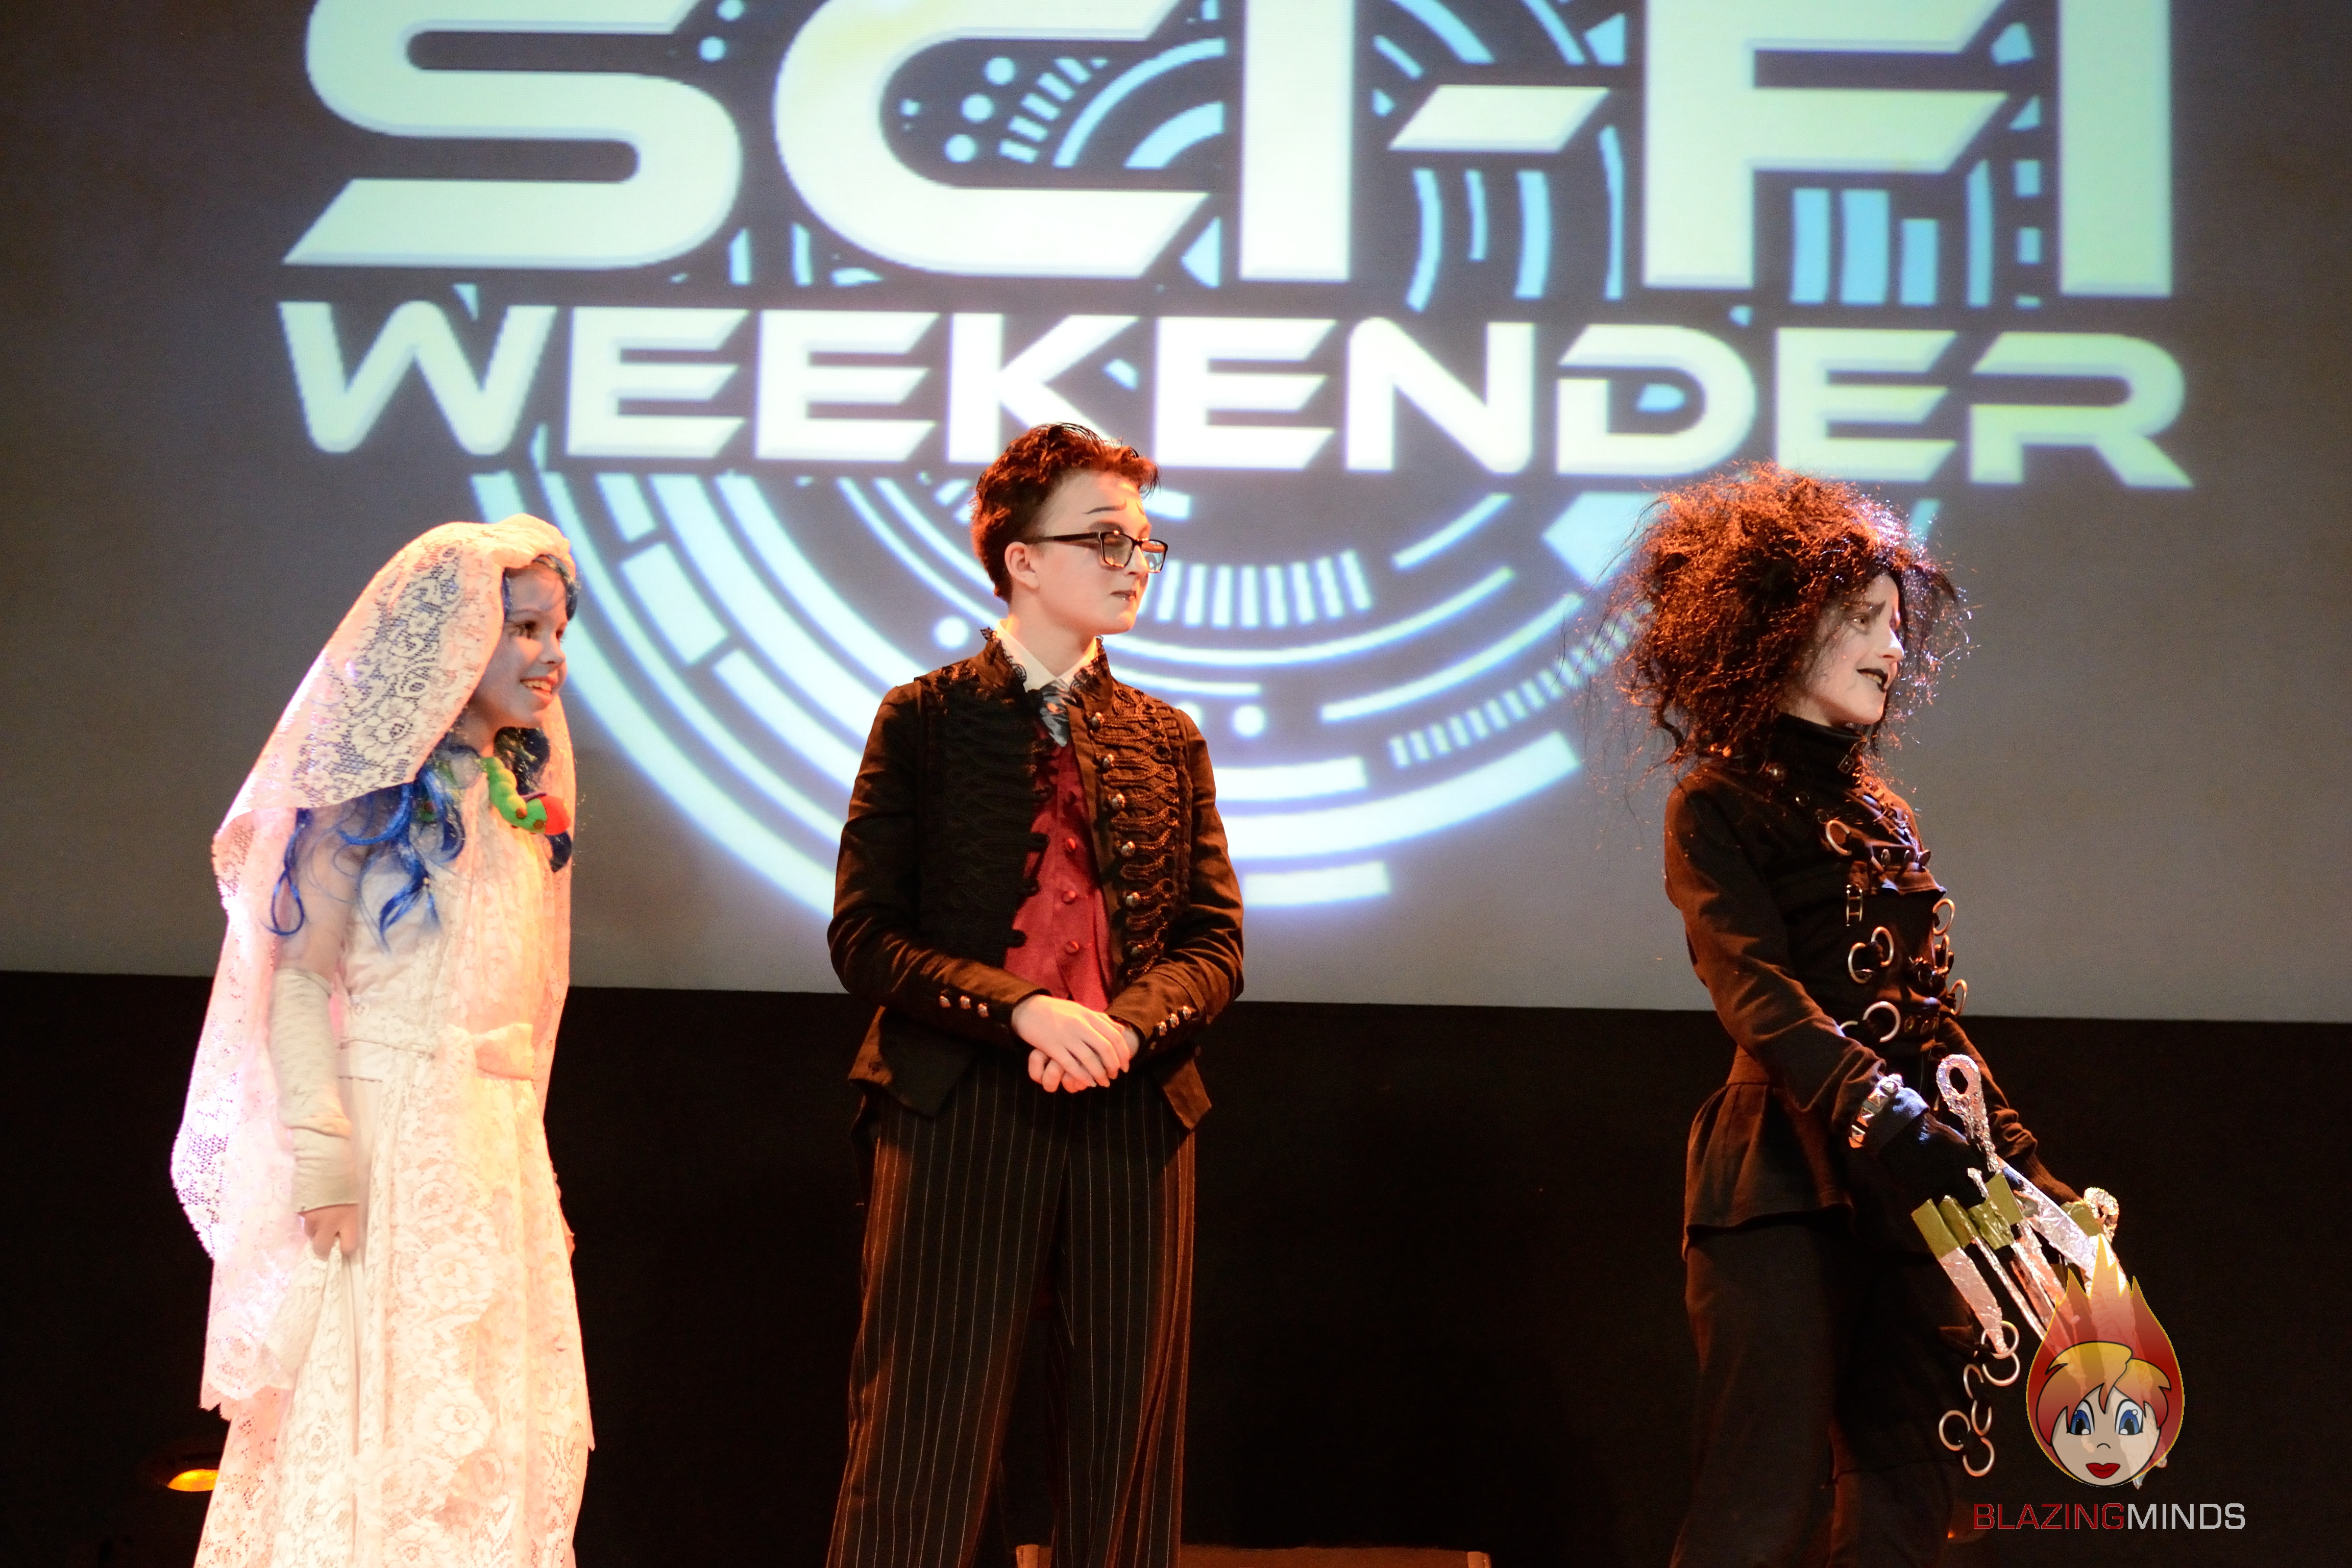 The Burtons, Winners of Sci-Fi Weekender 6's cosplay final (Photo ©2015 Karen Woodham)